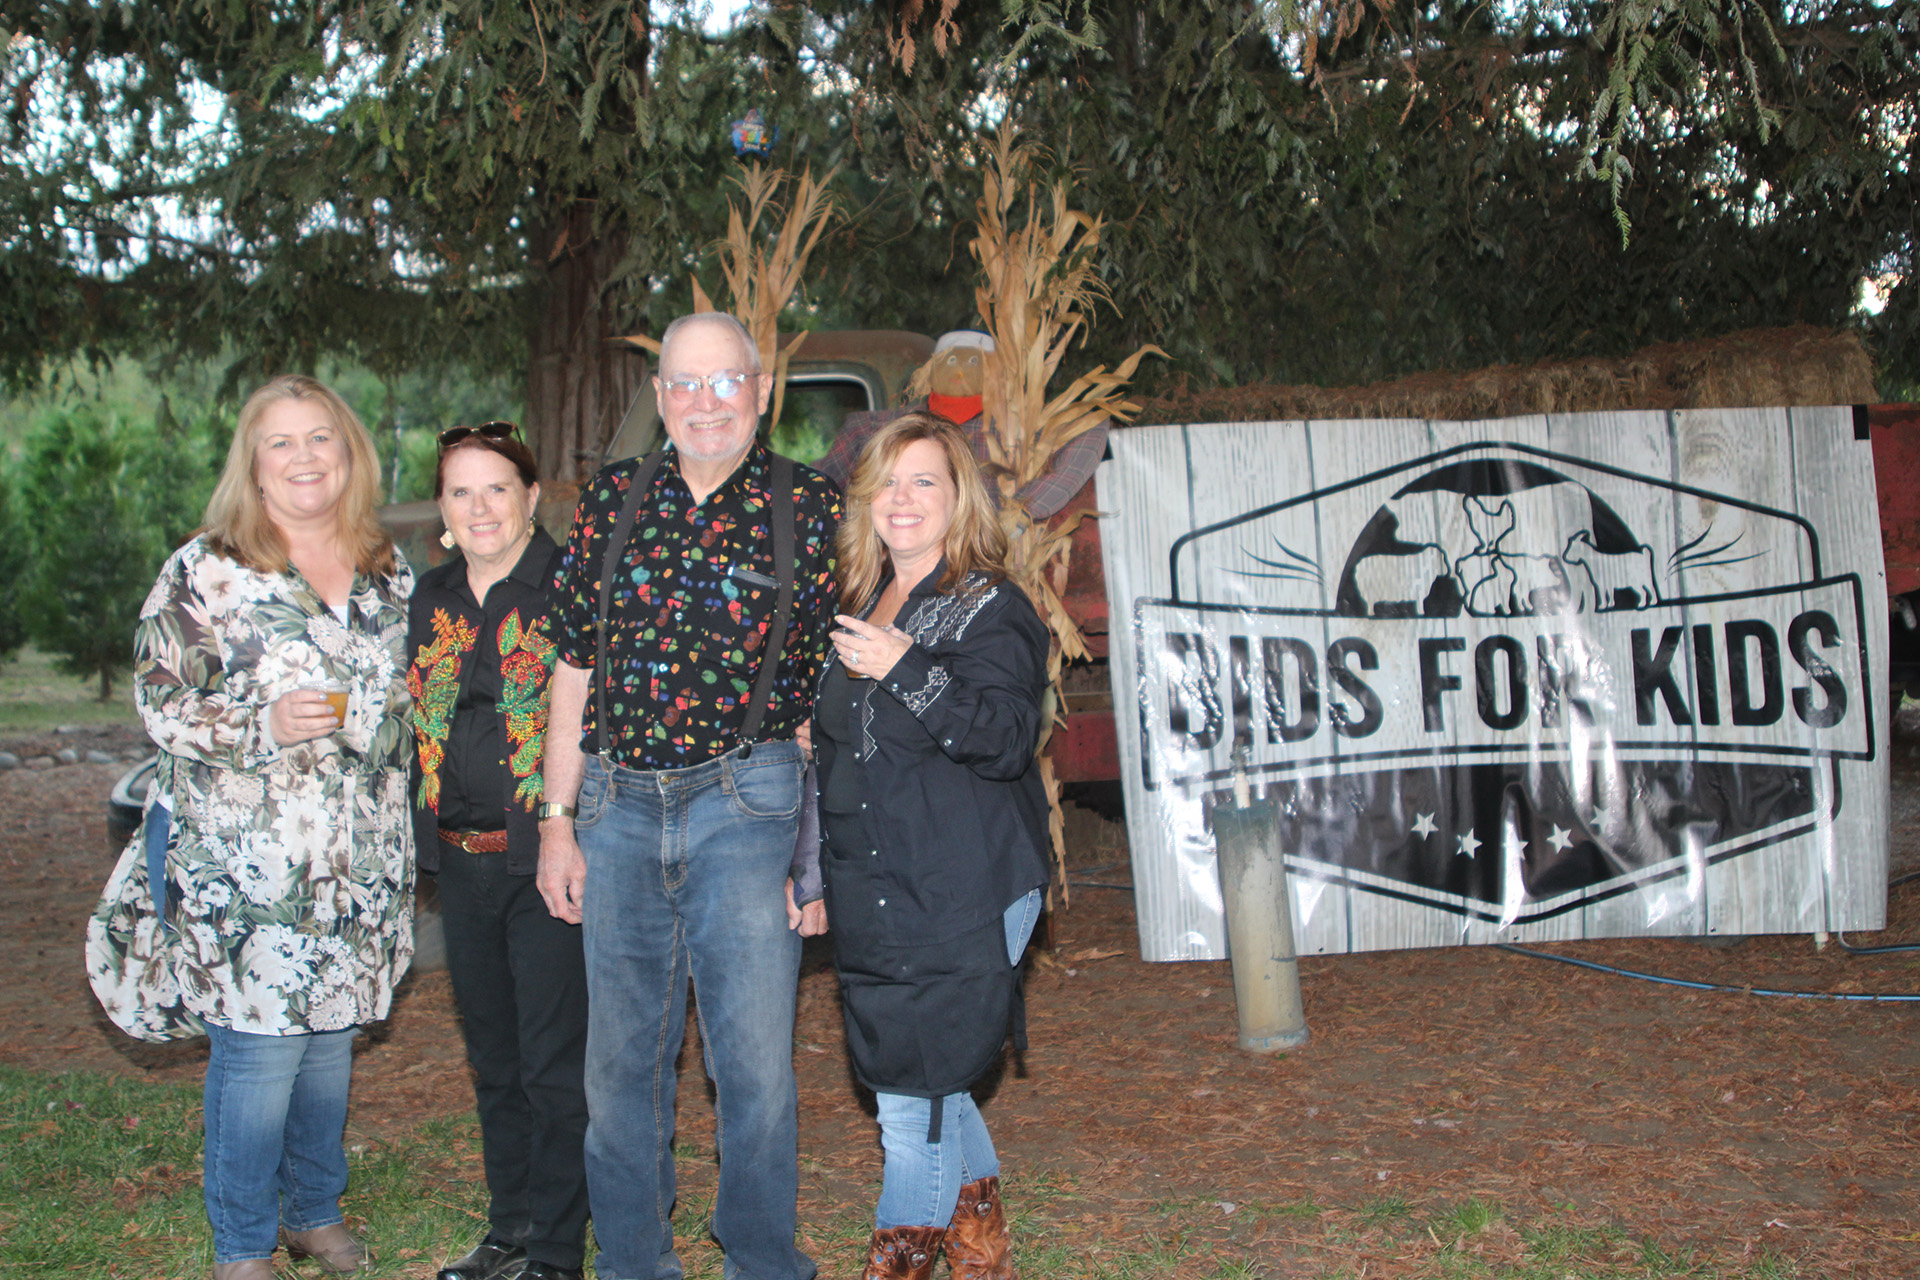 Group of people posing next to a bids for kids sign